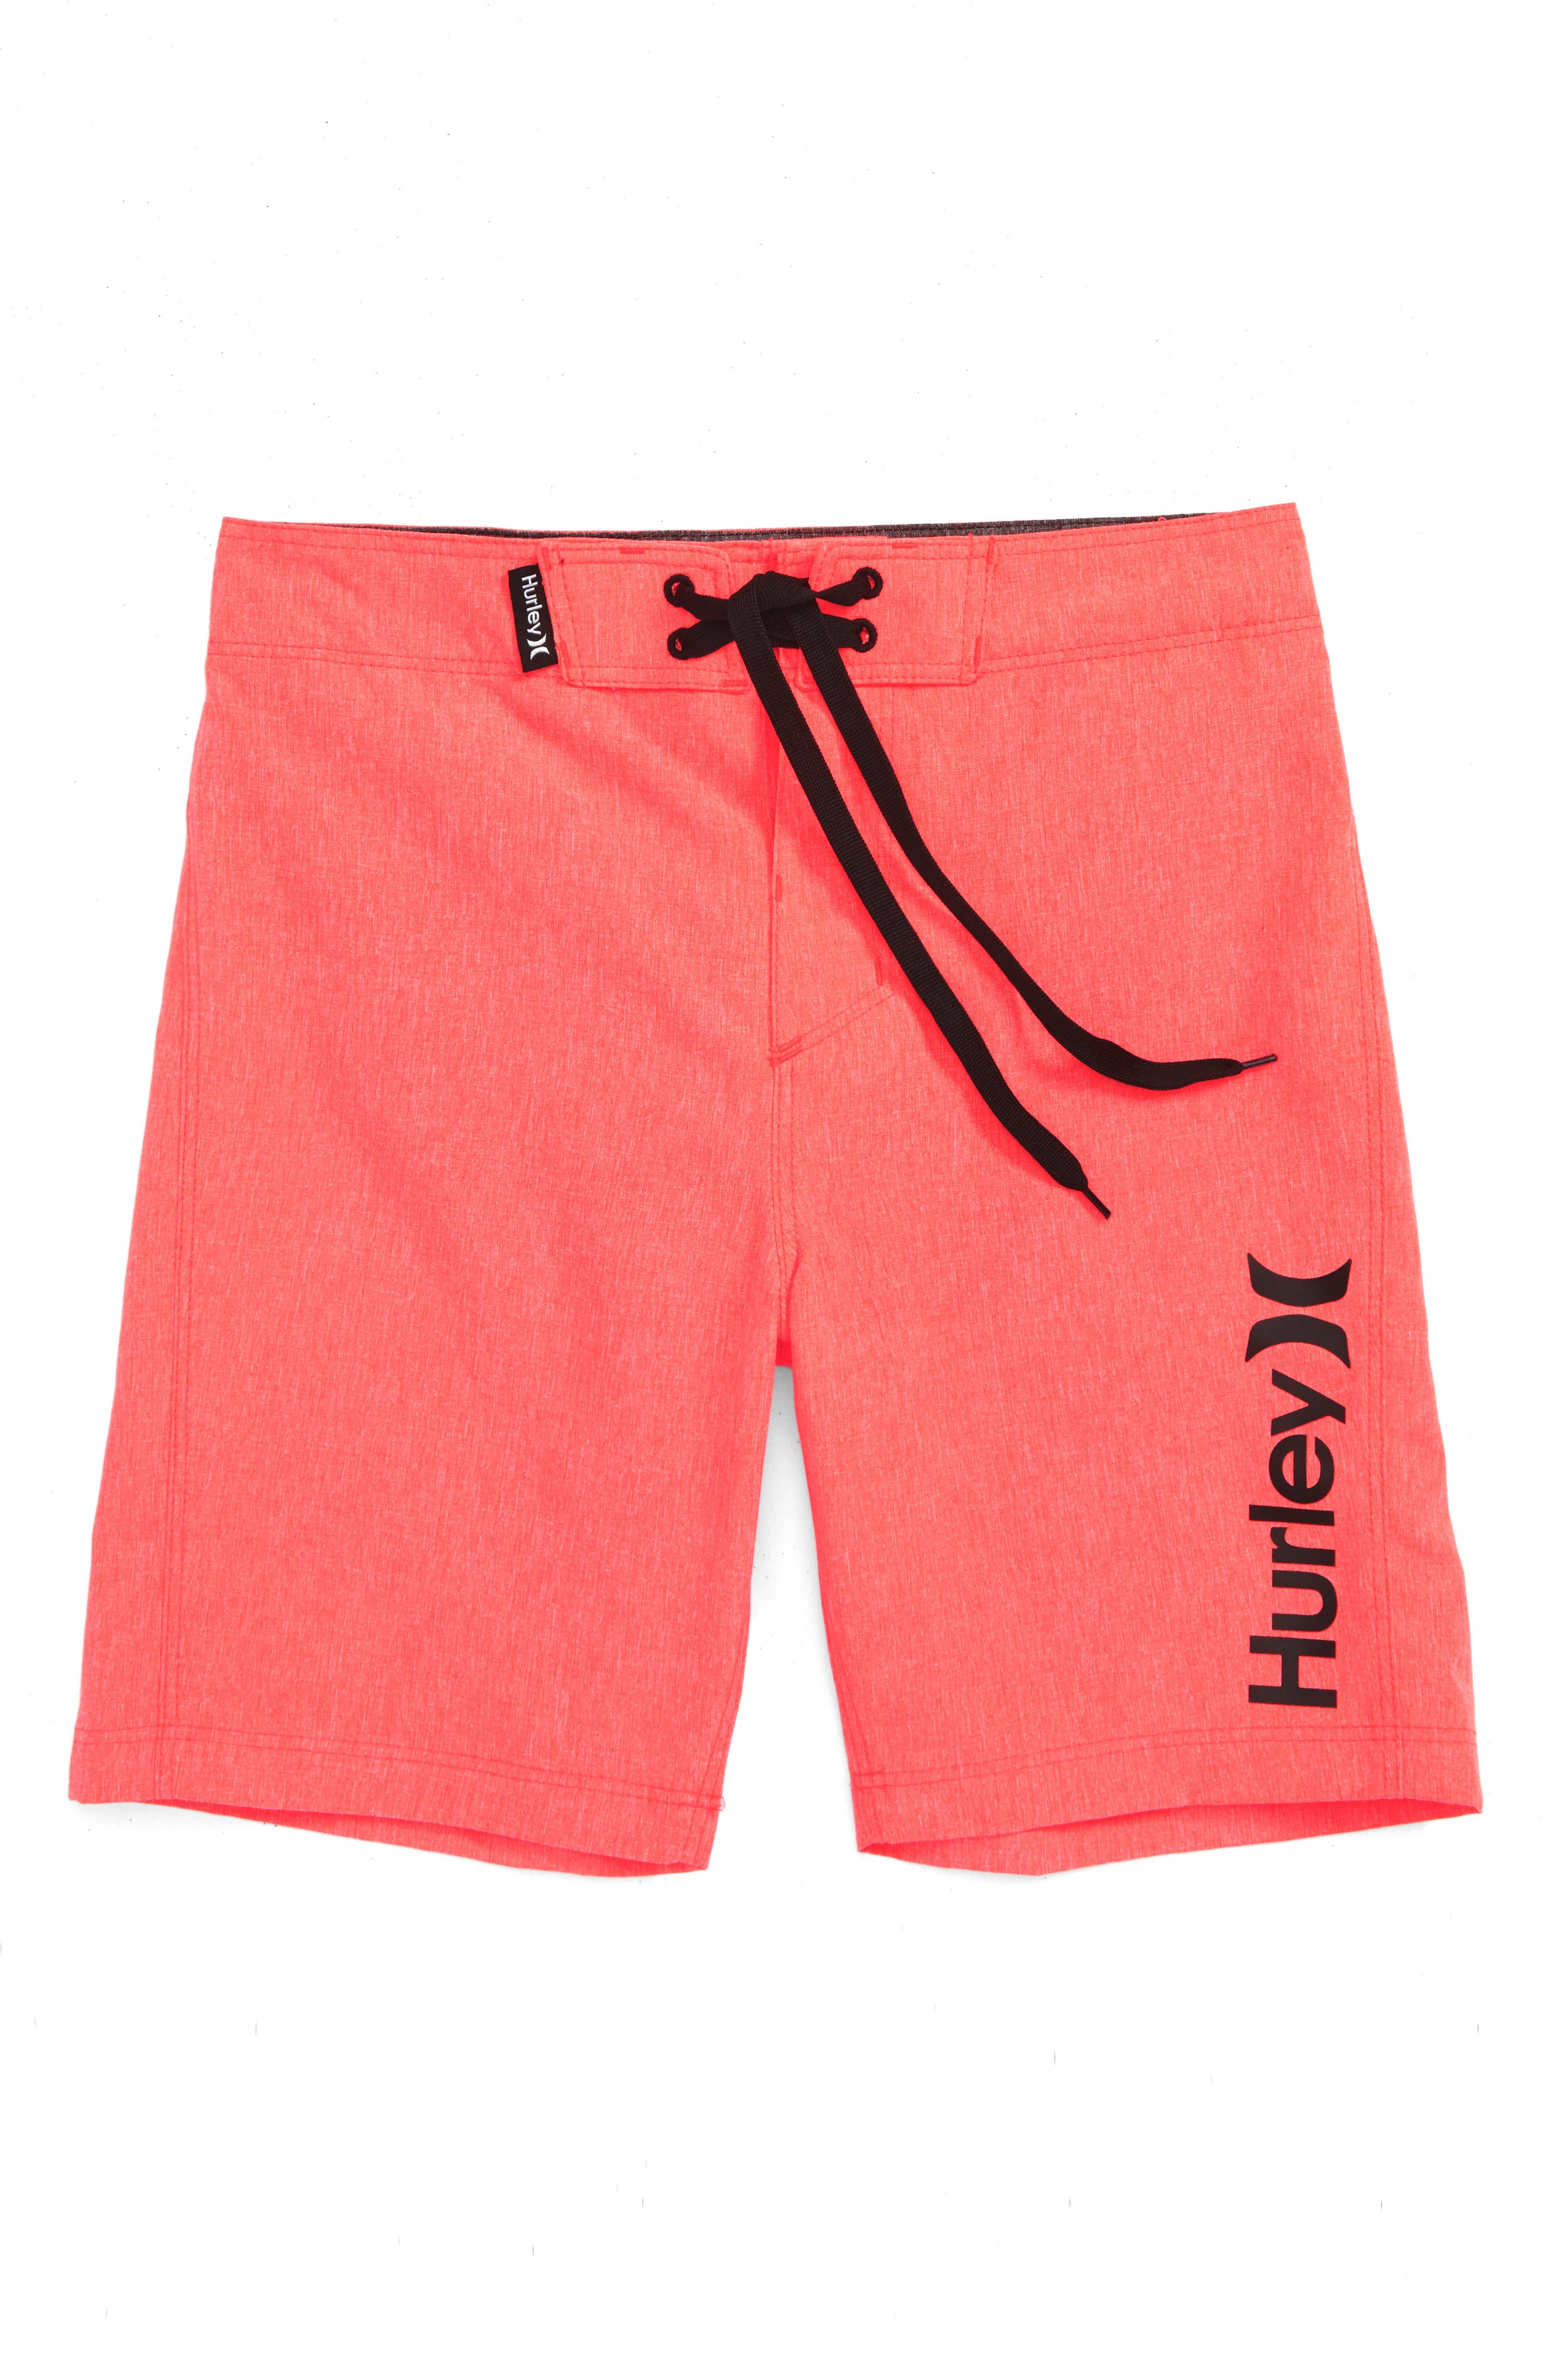 One and Only Dri-FIT Board Shorts,                             Main thumbnail 4, color,